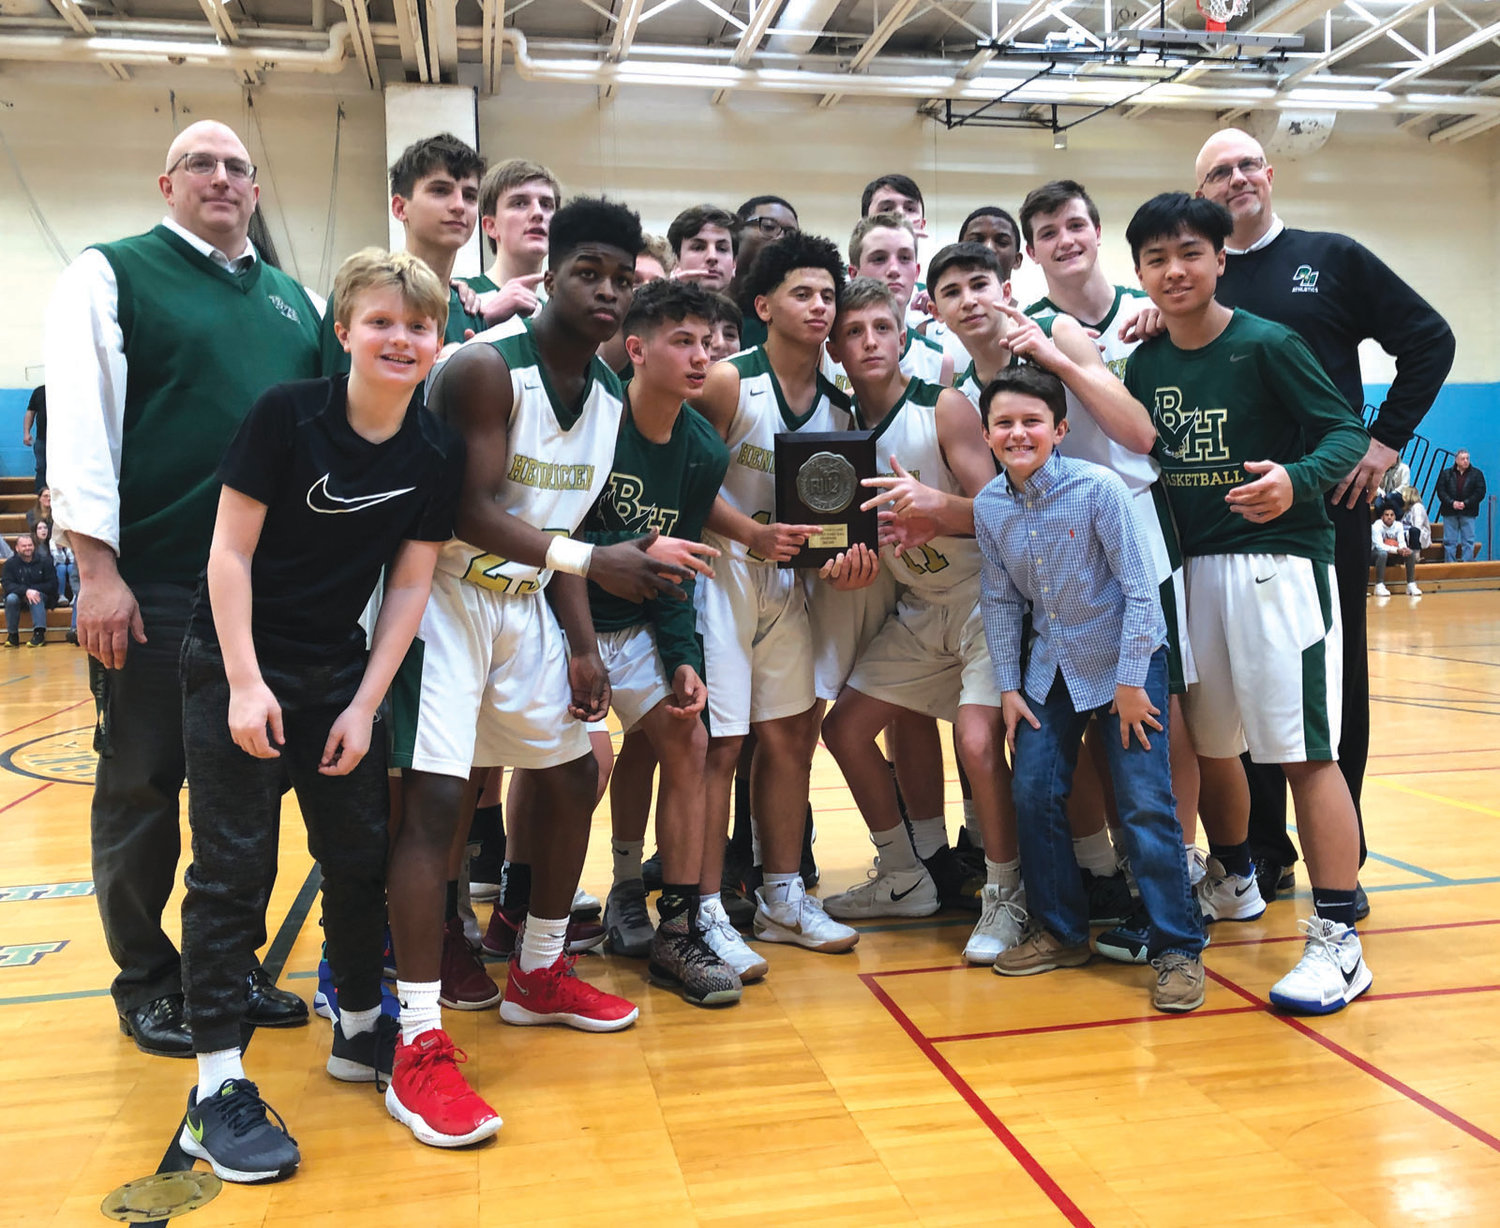 STATE CHAMPS: The Bishop Hendricken freshman basketball team celebrates its state championship win.